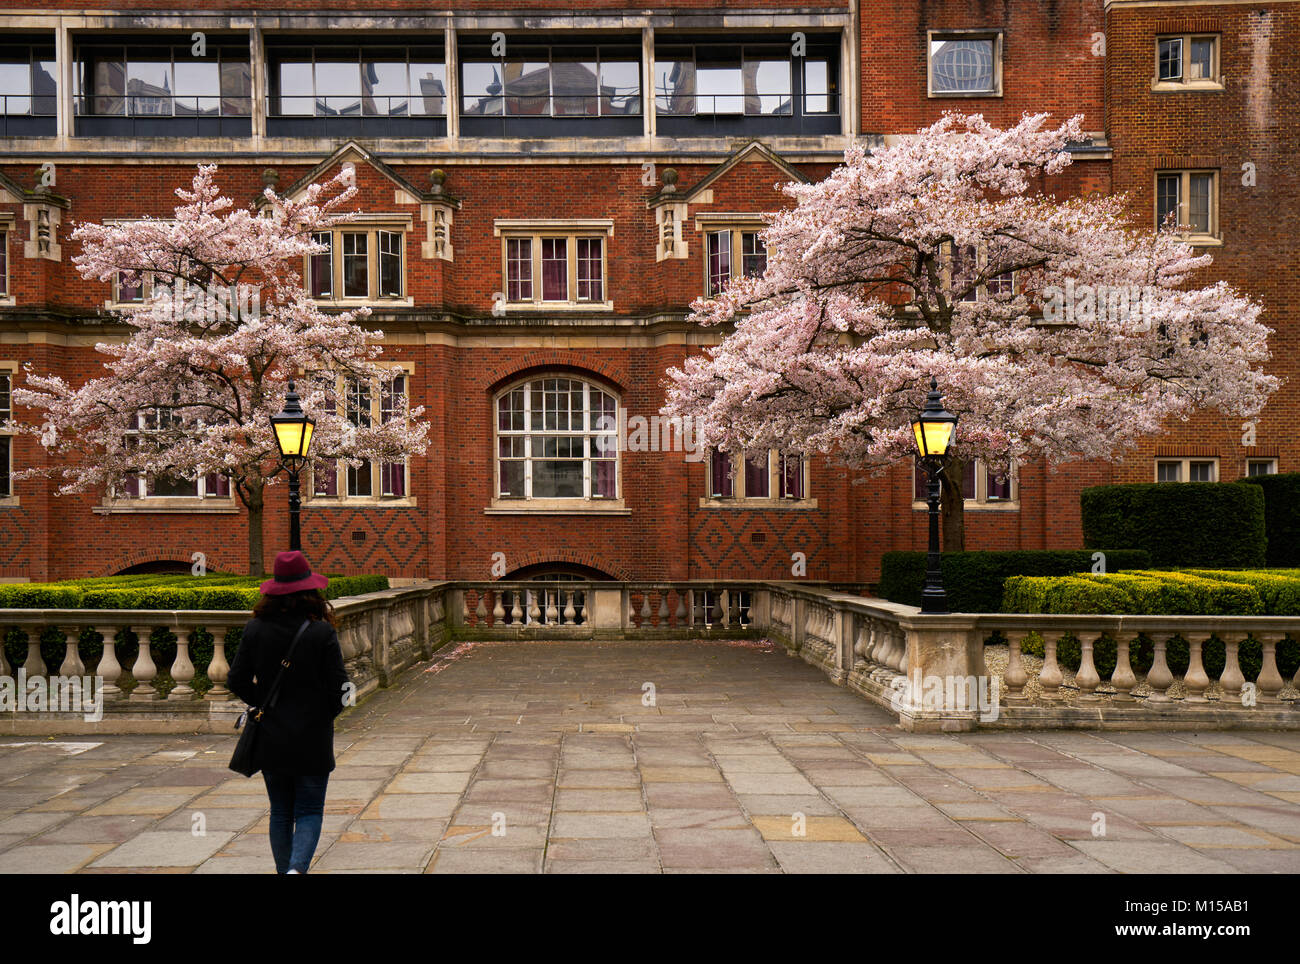 London, England - April 8, 2016: Girl looking at Cherry Blossom Trees in the Royal Albert Hall in London, England Stock Photo